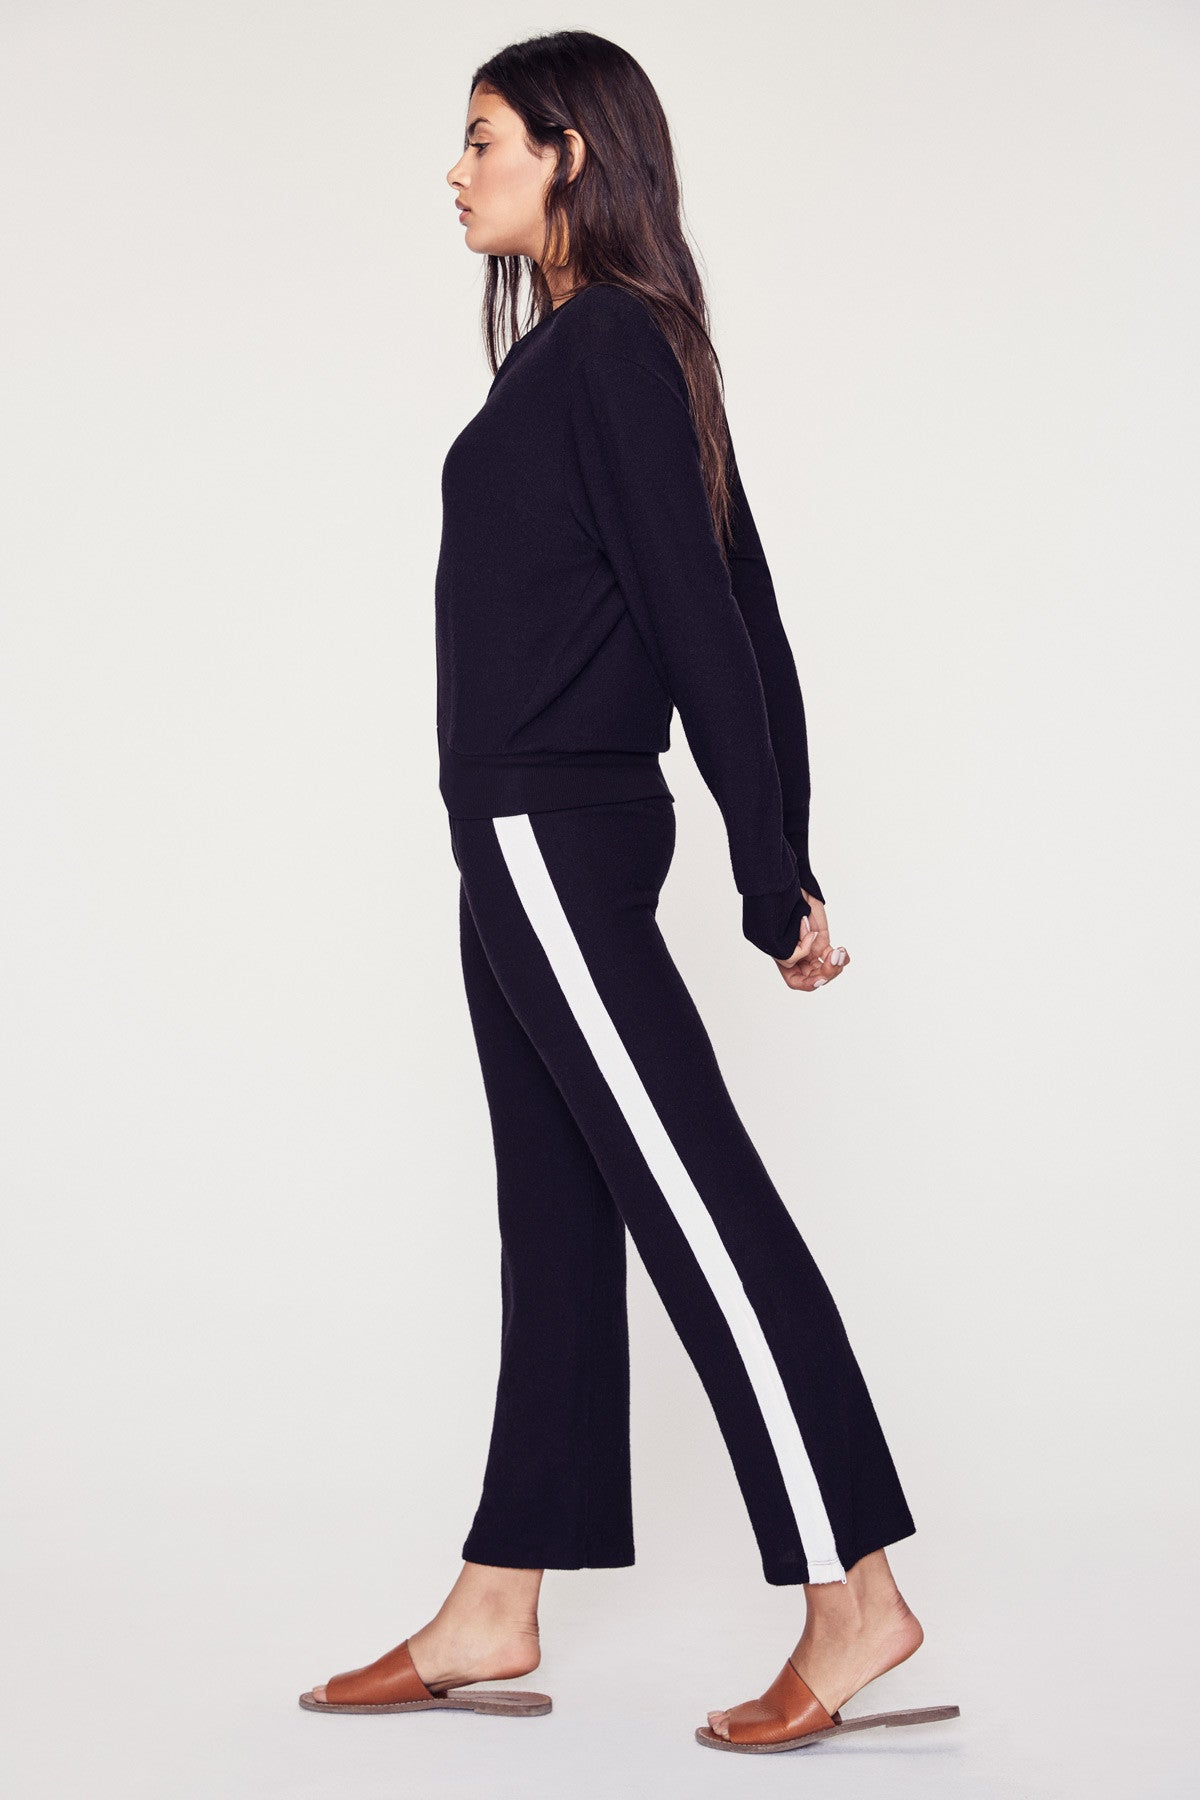 Sweater Track Pant - Black